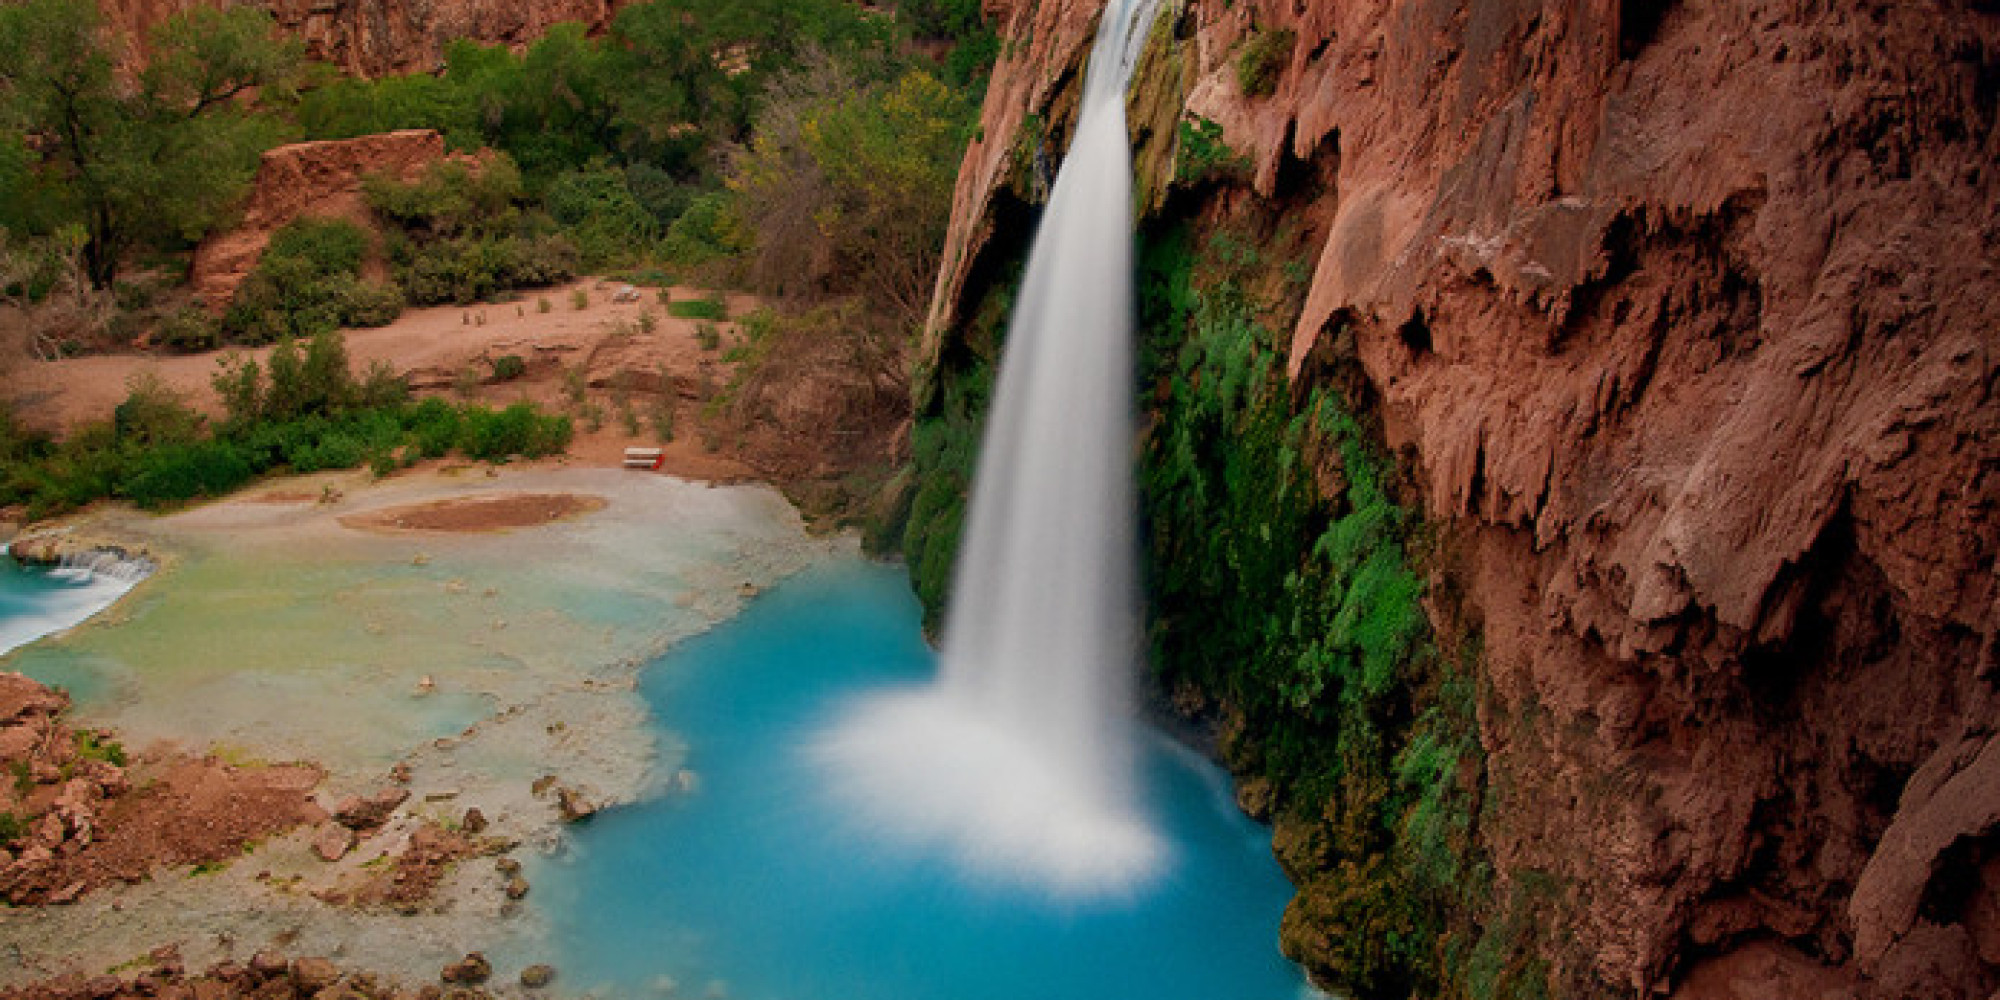 grand canyon helicopter with Grand Canyon Waterfalls Falls N 5537451 on Kauai The Garden Isle additionally New Year New You 11 Places To Skydive In 2016 additionally Museum Ice Cream in addition dothecanyon likewise Tourist Attractions In Las Vegas.